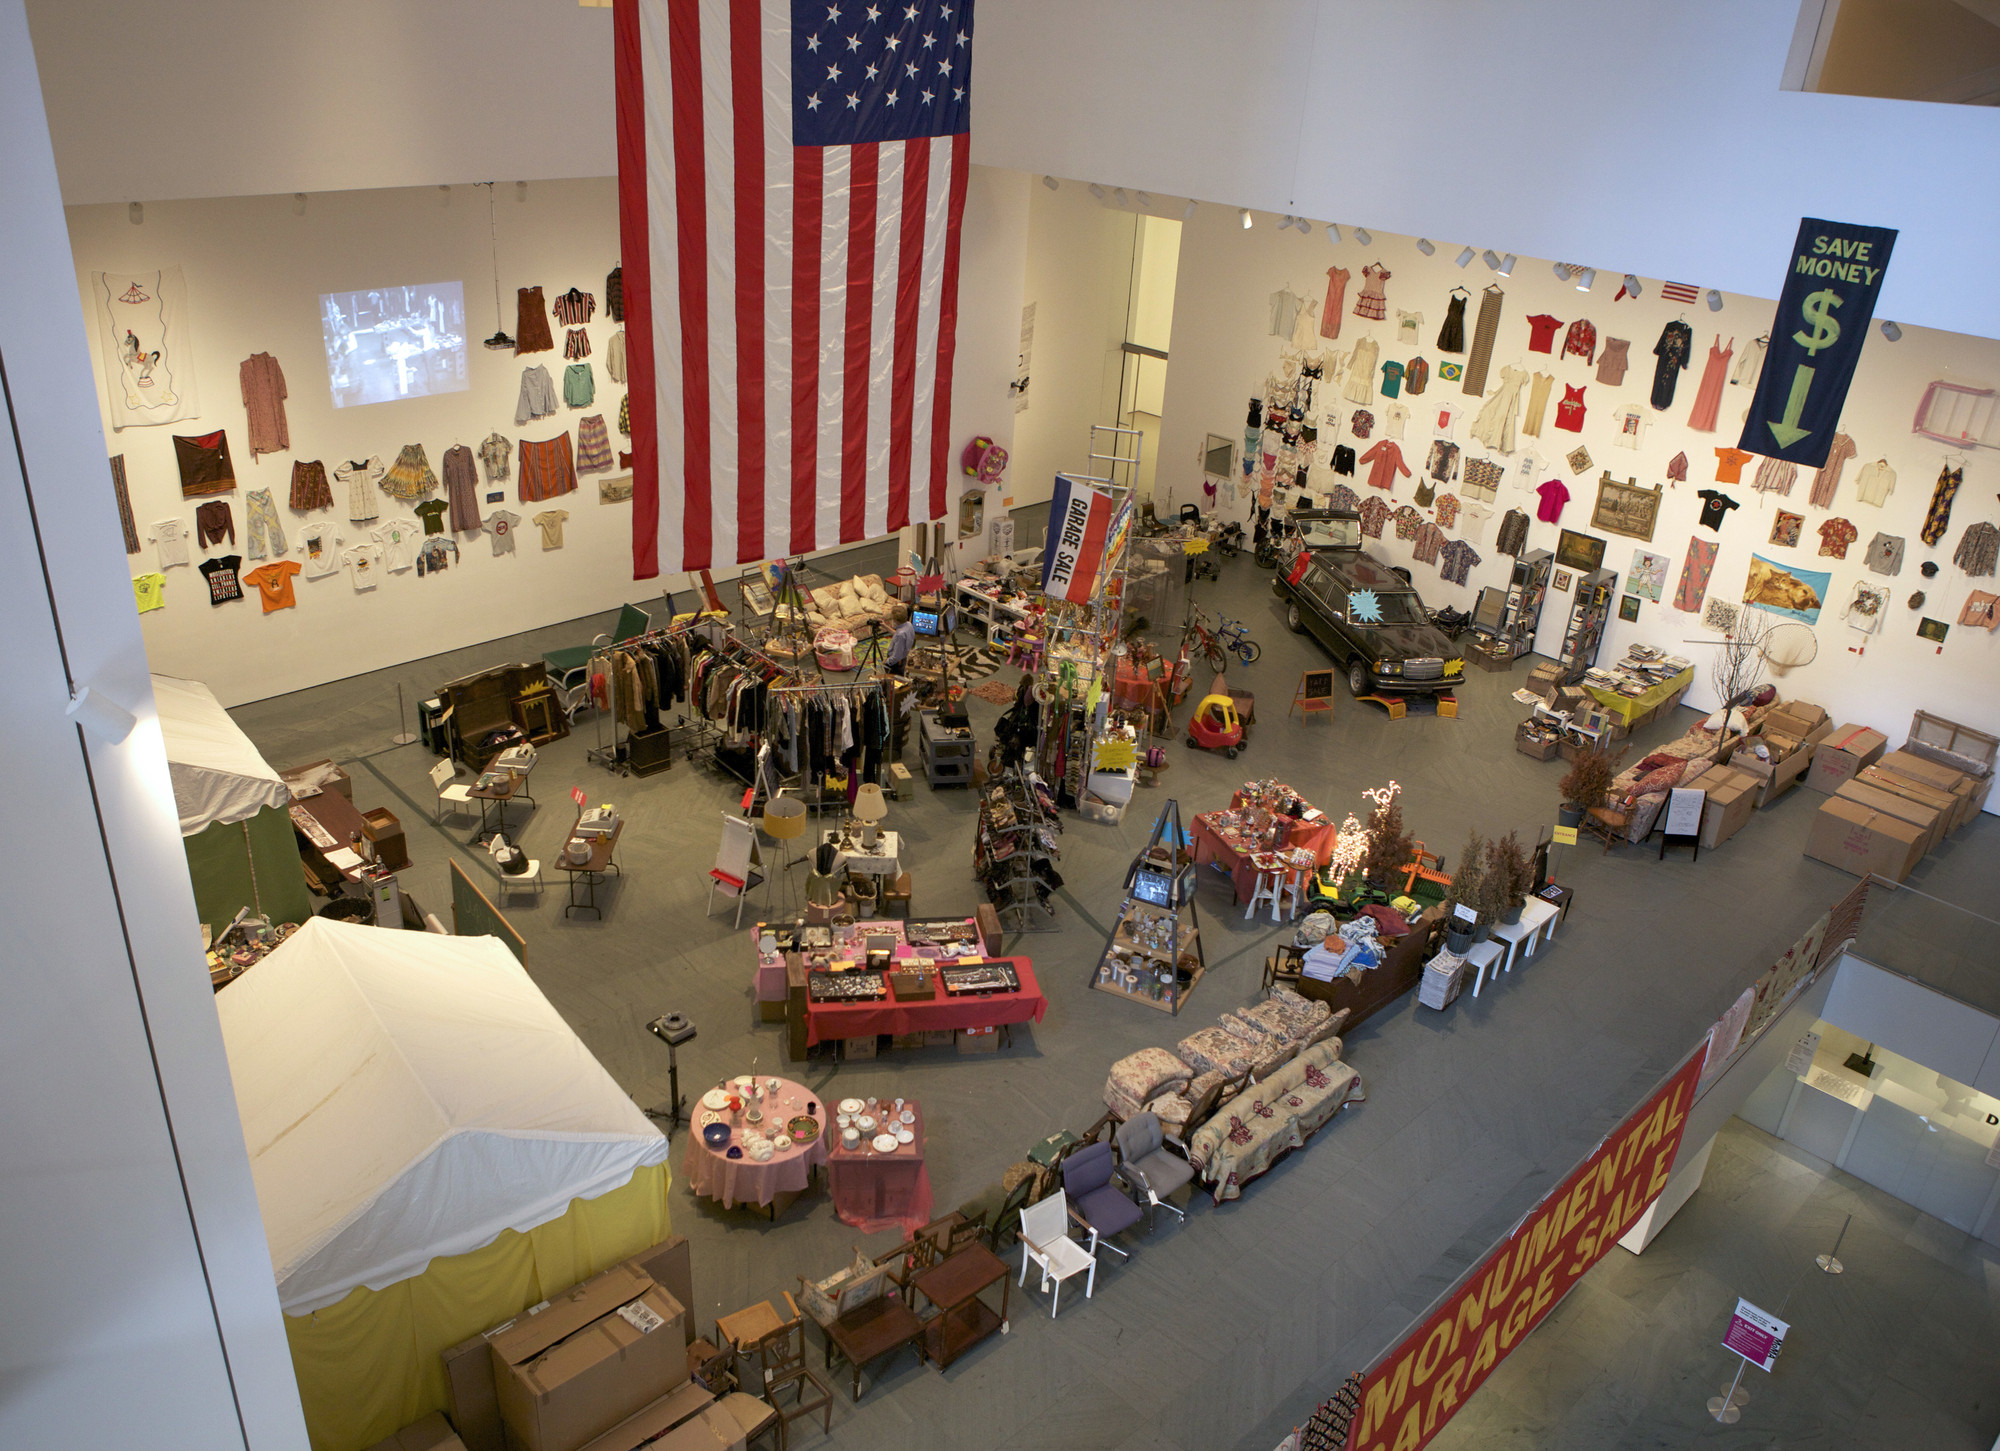 Martha Rosler. Meta-Monumental Garage Sale (installation view). 2012. Photo: Shannon Darrough